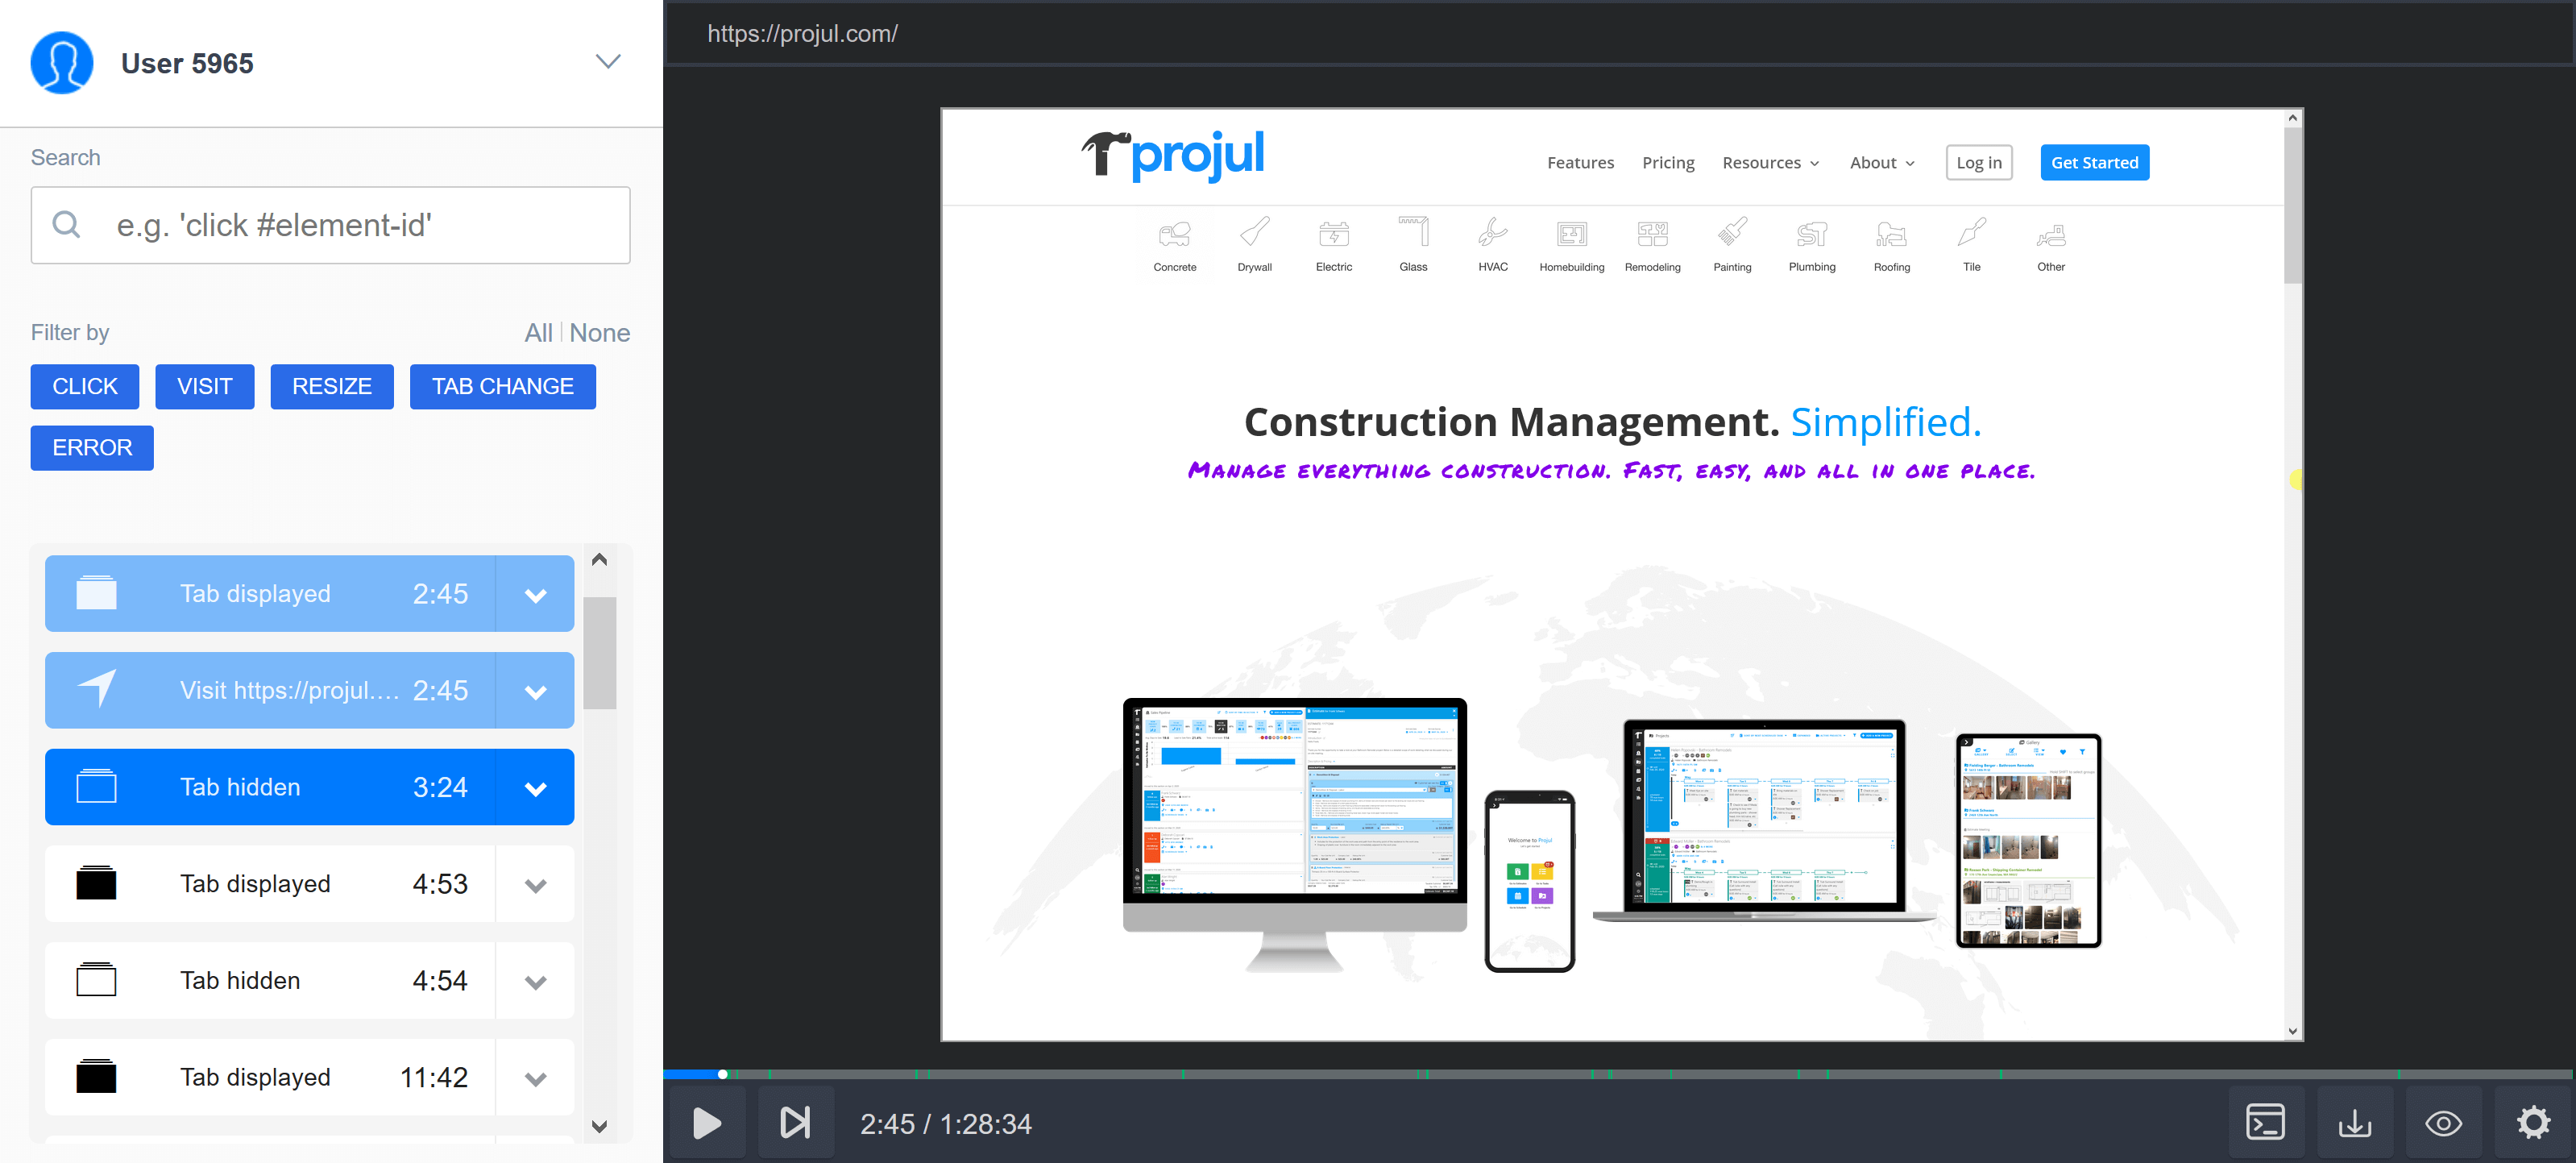 Projul's user session replay